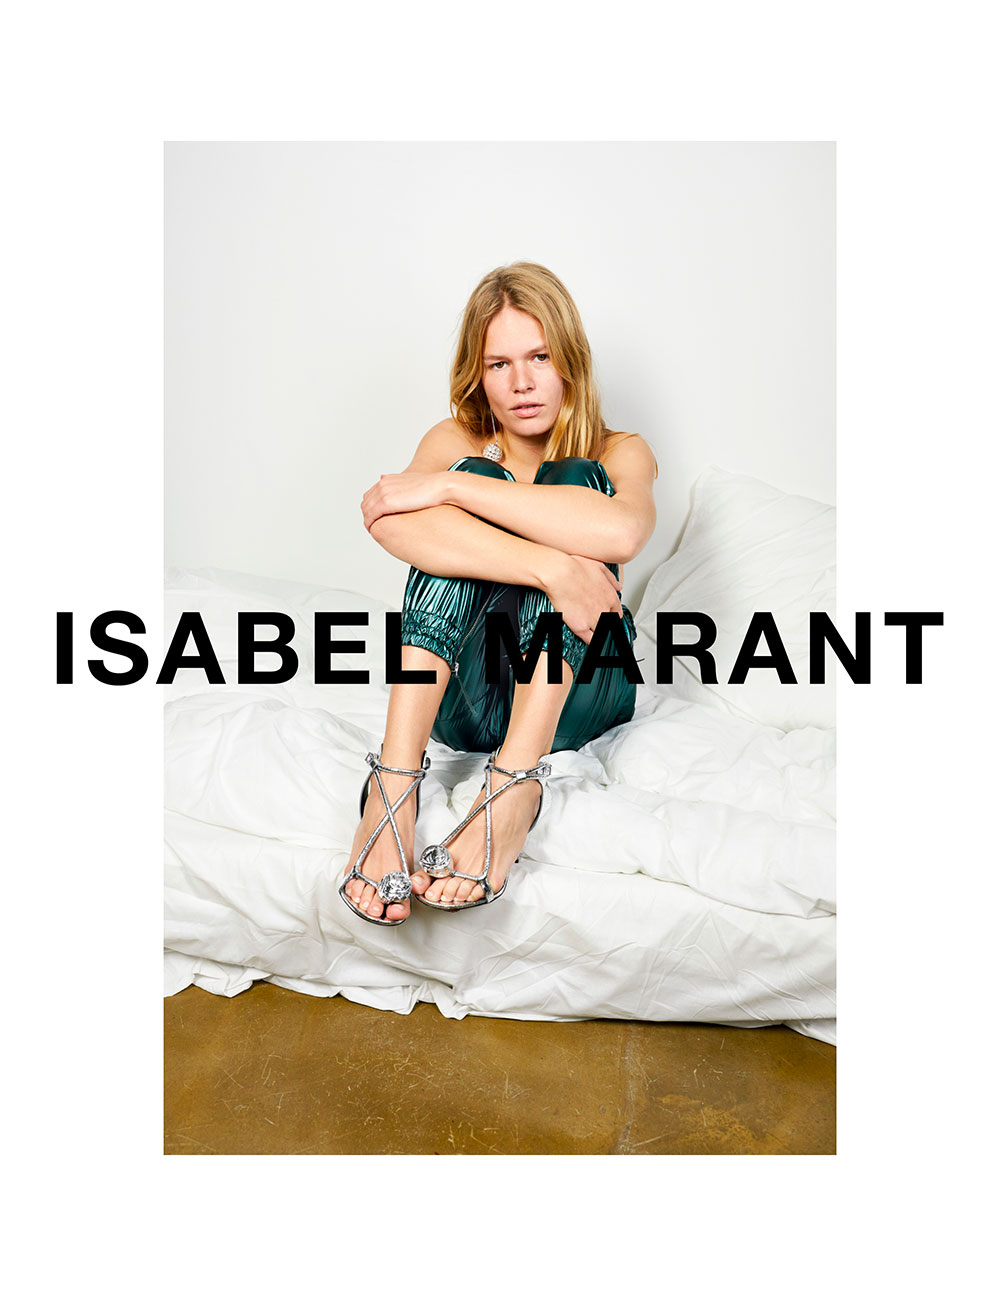 ISABEL_MARANT_PE18_SIMPLE_PAGE_HR_4